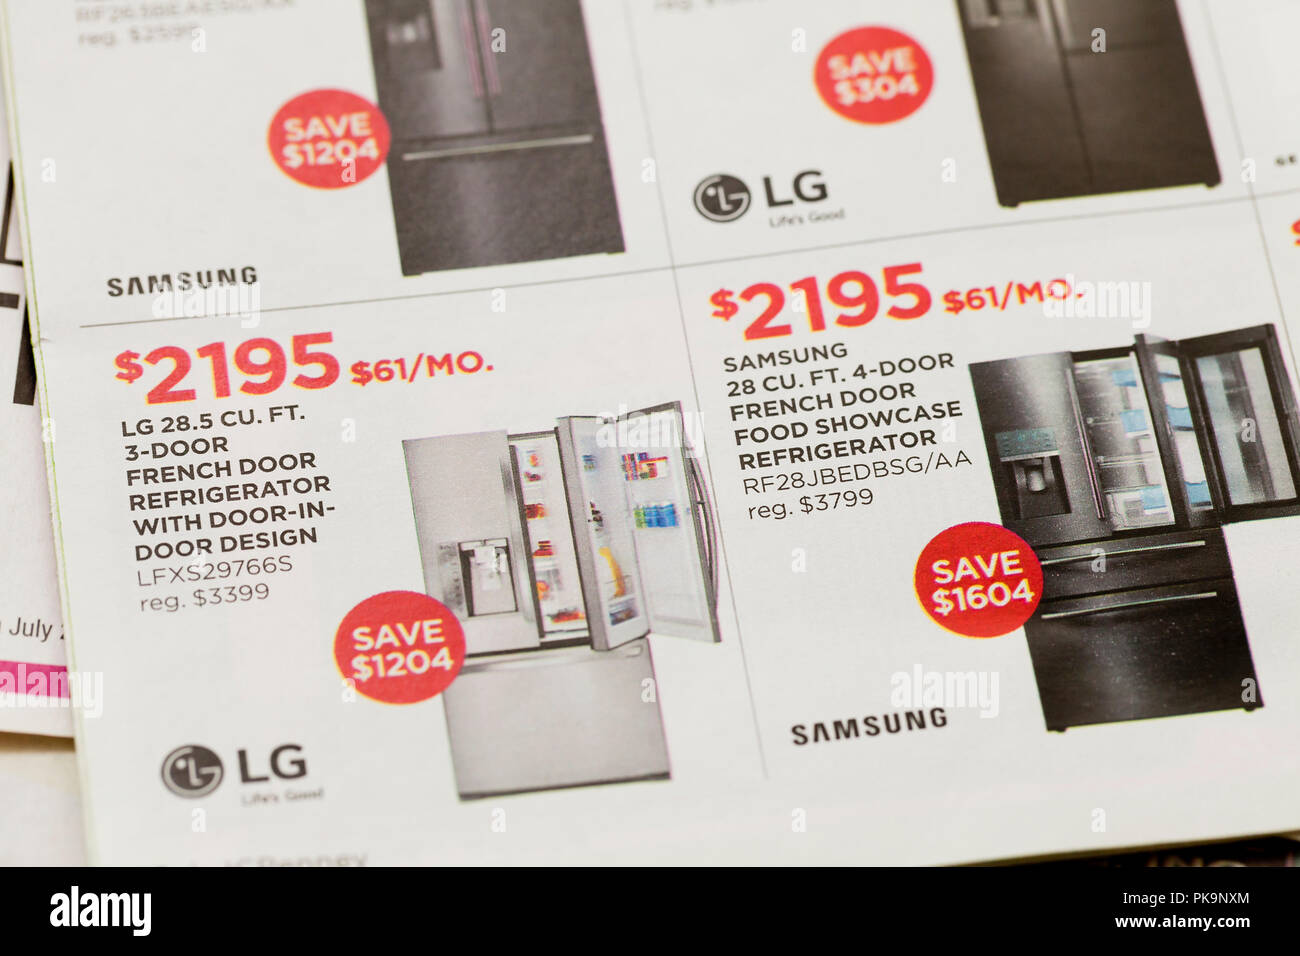 Weekly mailer ad for refrigerators (home appliances) - USA - Stock Image